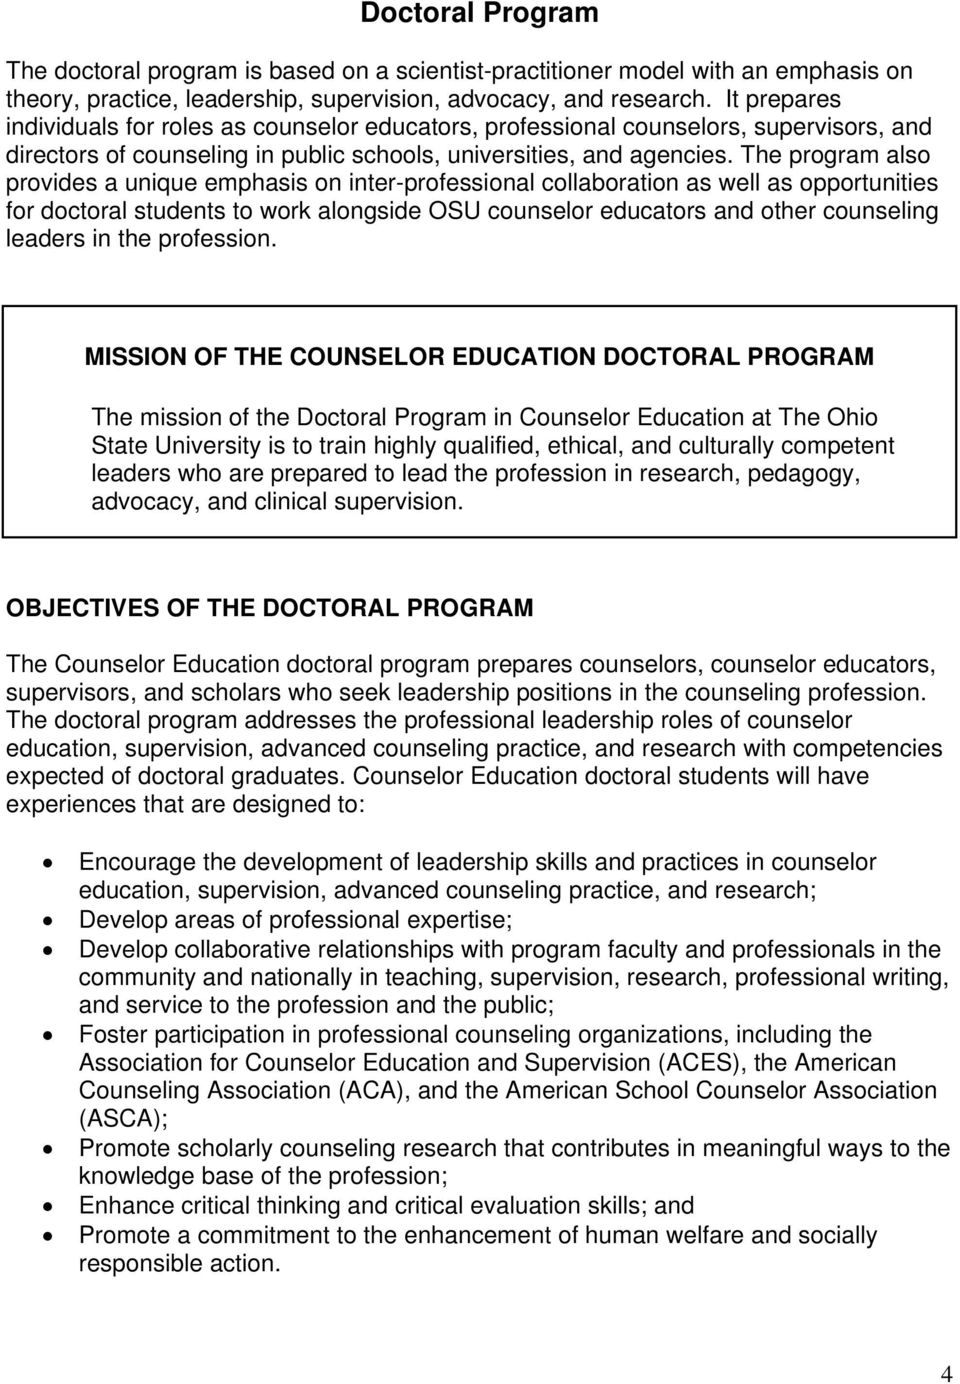 The program also provides a unique emphasis on inter-professional collaboration as well as opportunities for doctoral students to work alongside OSU counselor educators and other counseling leaders